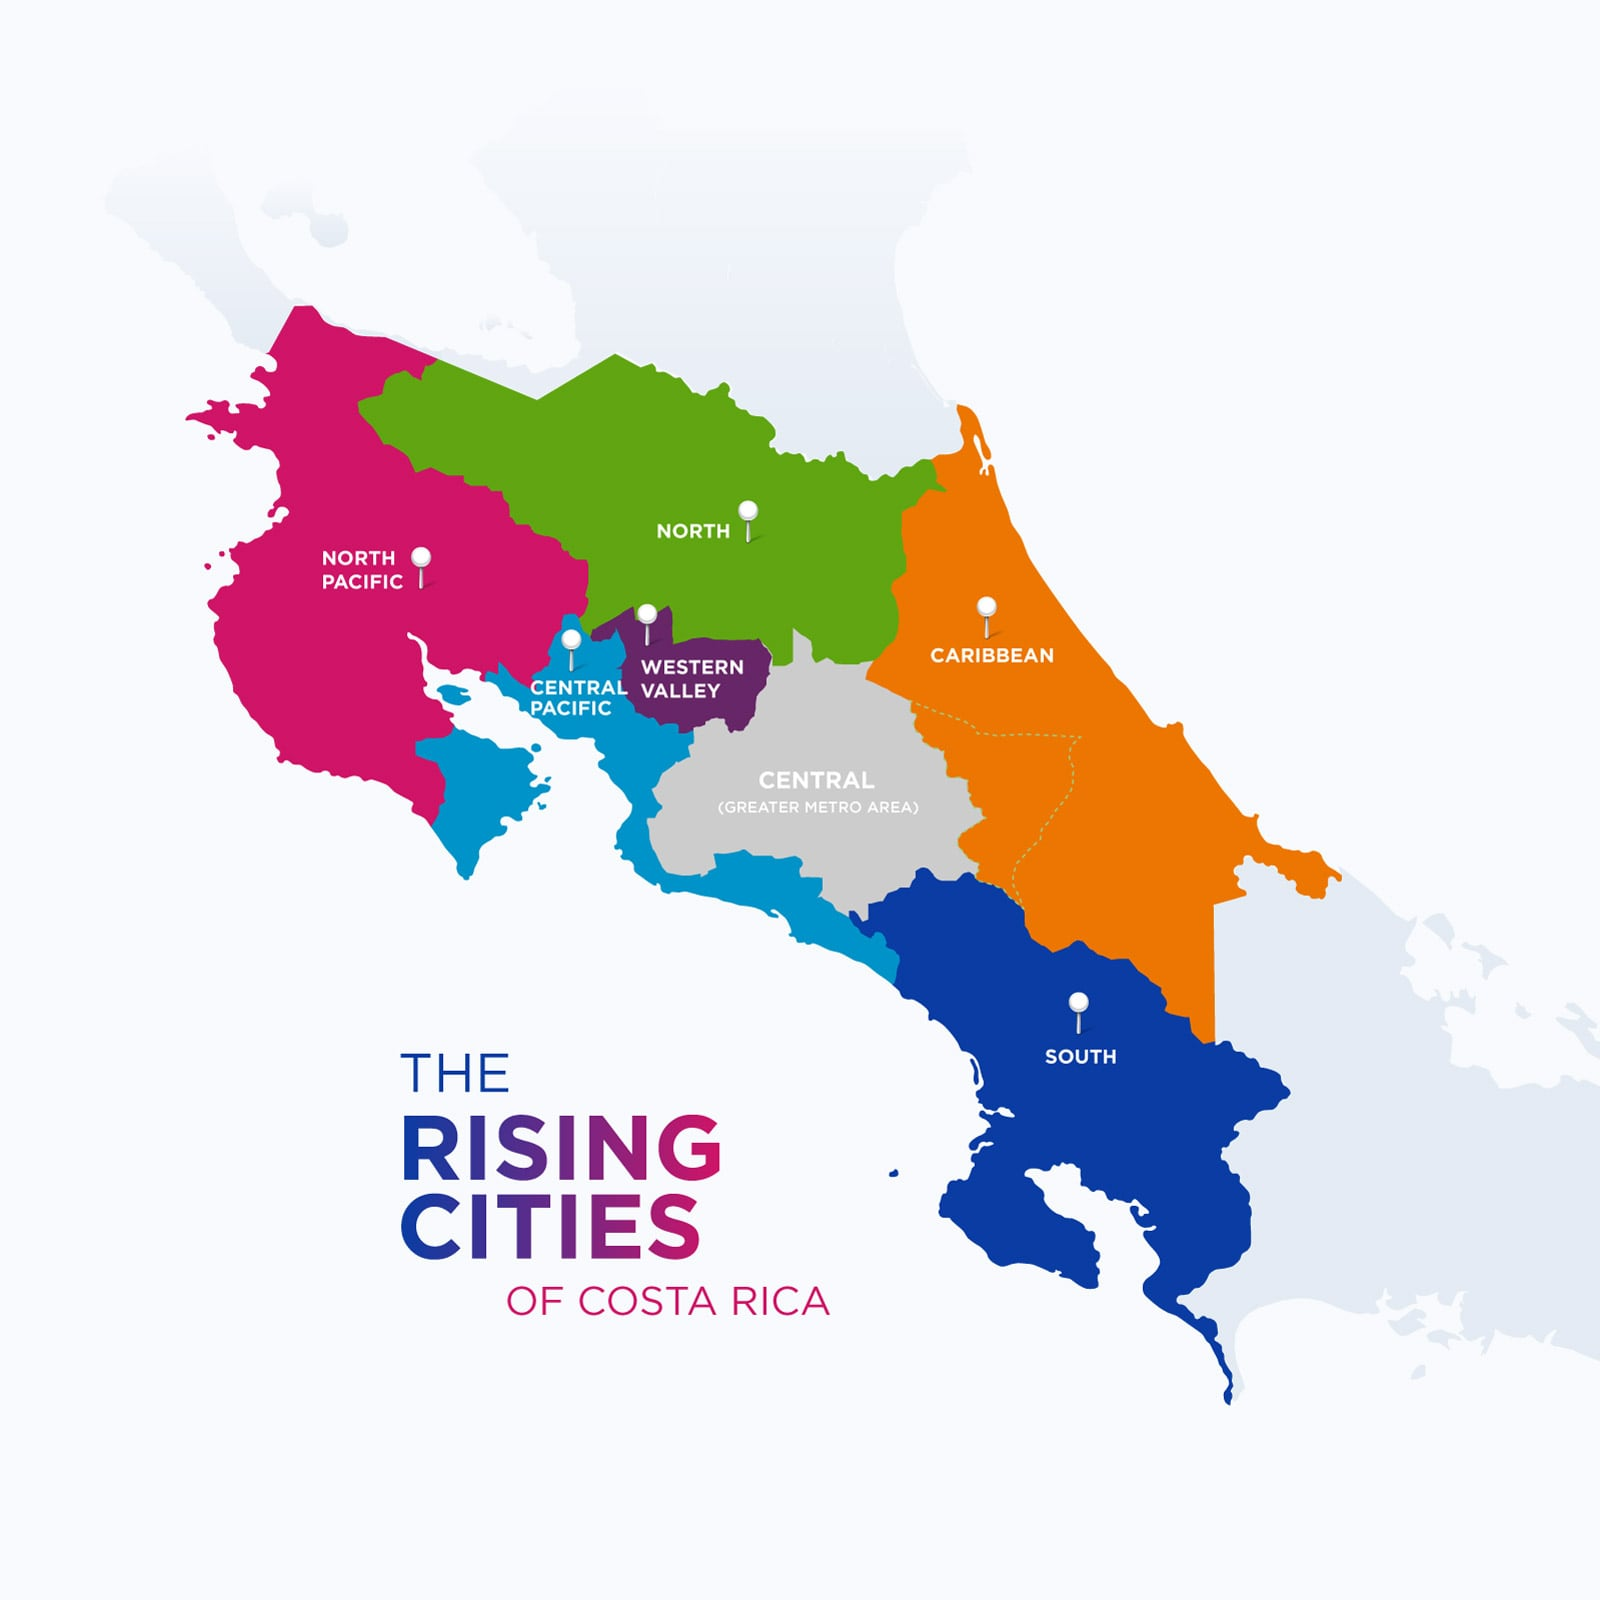 Rising Cities map of Costa Rica